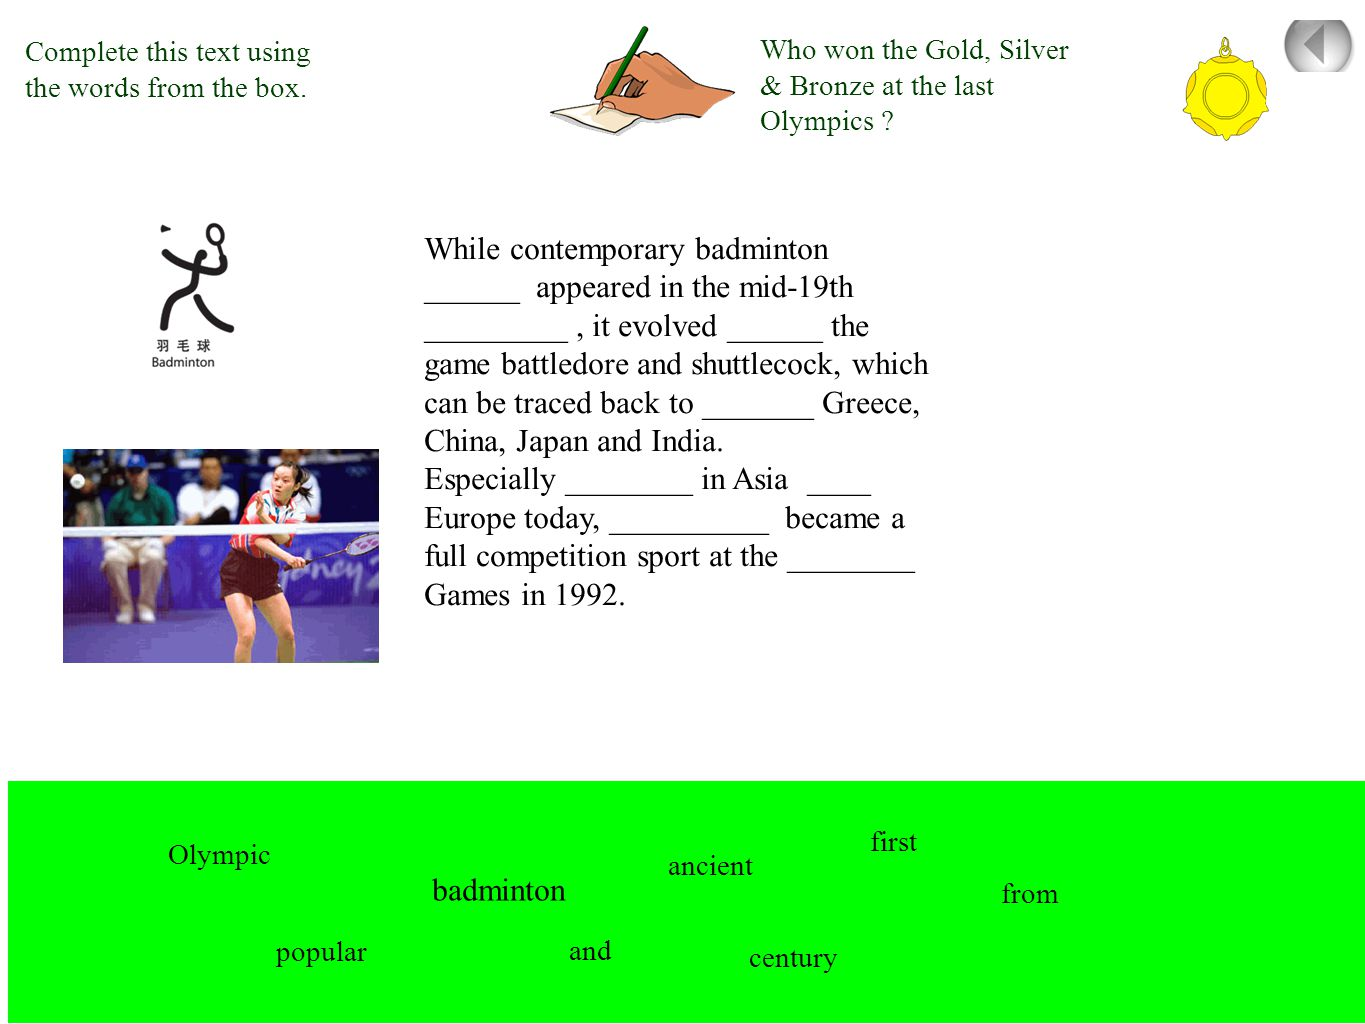 While contemporary badminton ______ appeared in the mid-19th _________, it evolved ______ the game battledore and shuttlecock, which can be traced back to _______ Greece, China, Japan and India.